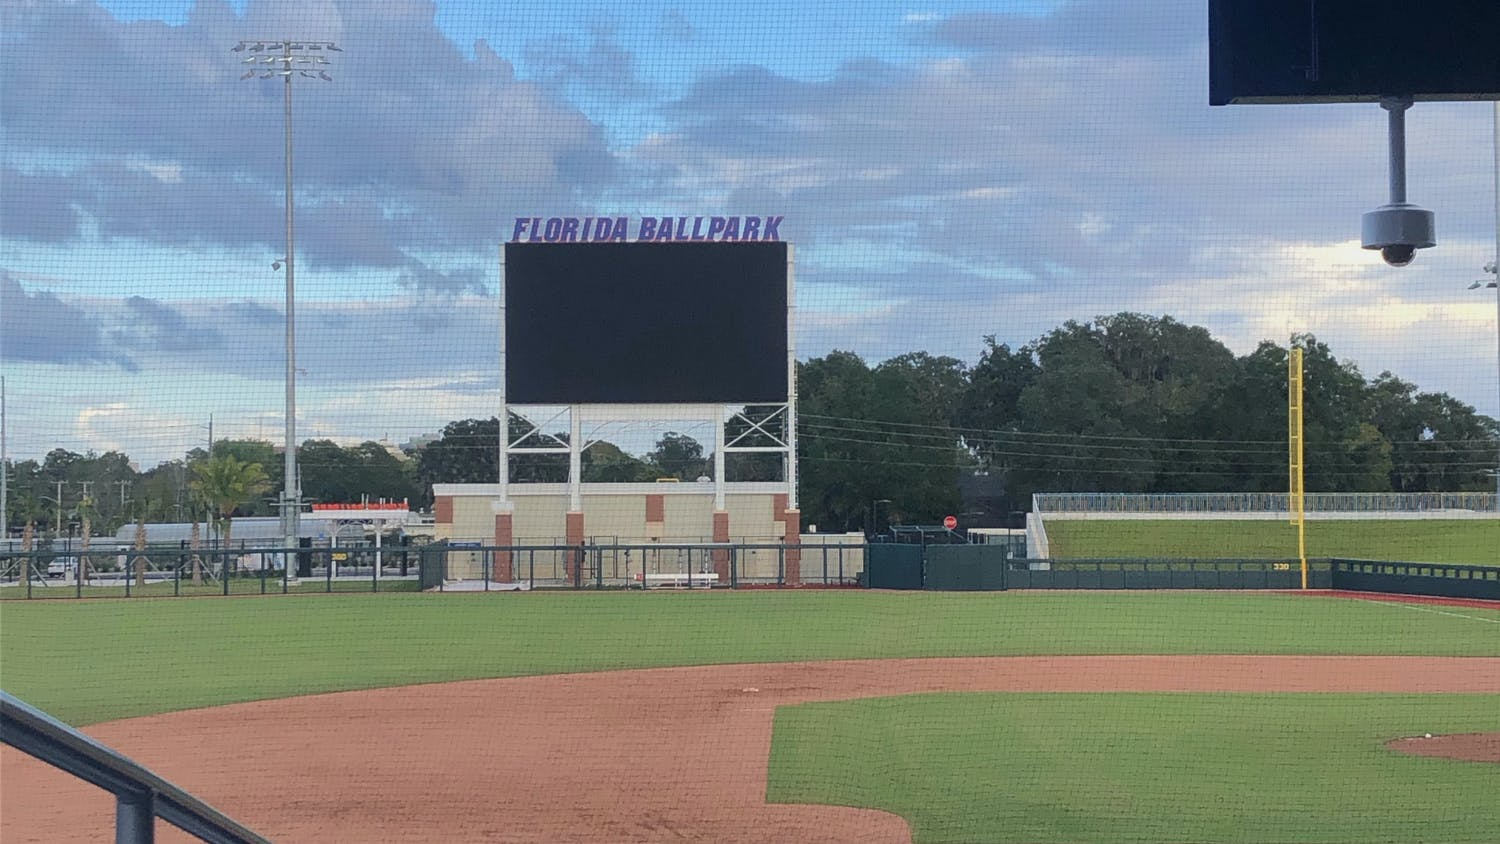 Florida Ballpark hosted its first opponent since the end of the 2021 season Saturday and offered a glimpse at an overhauled Florida roster.